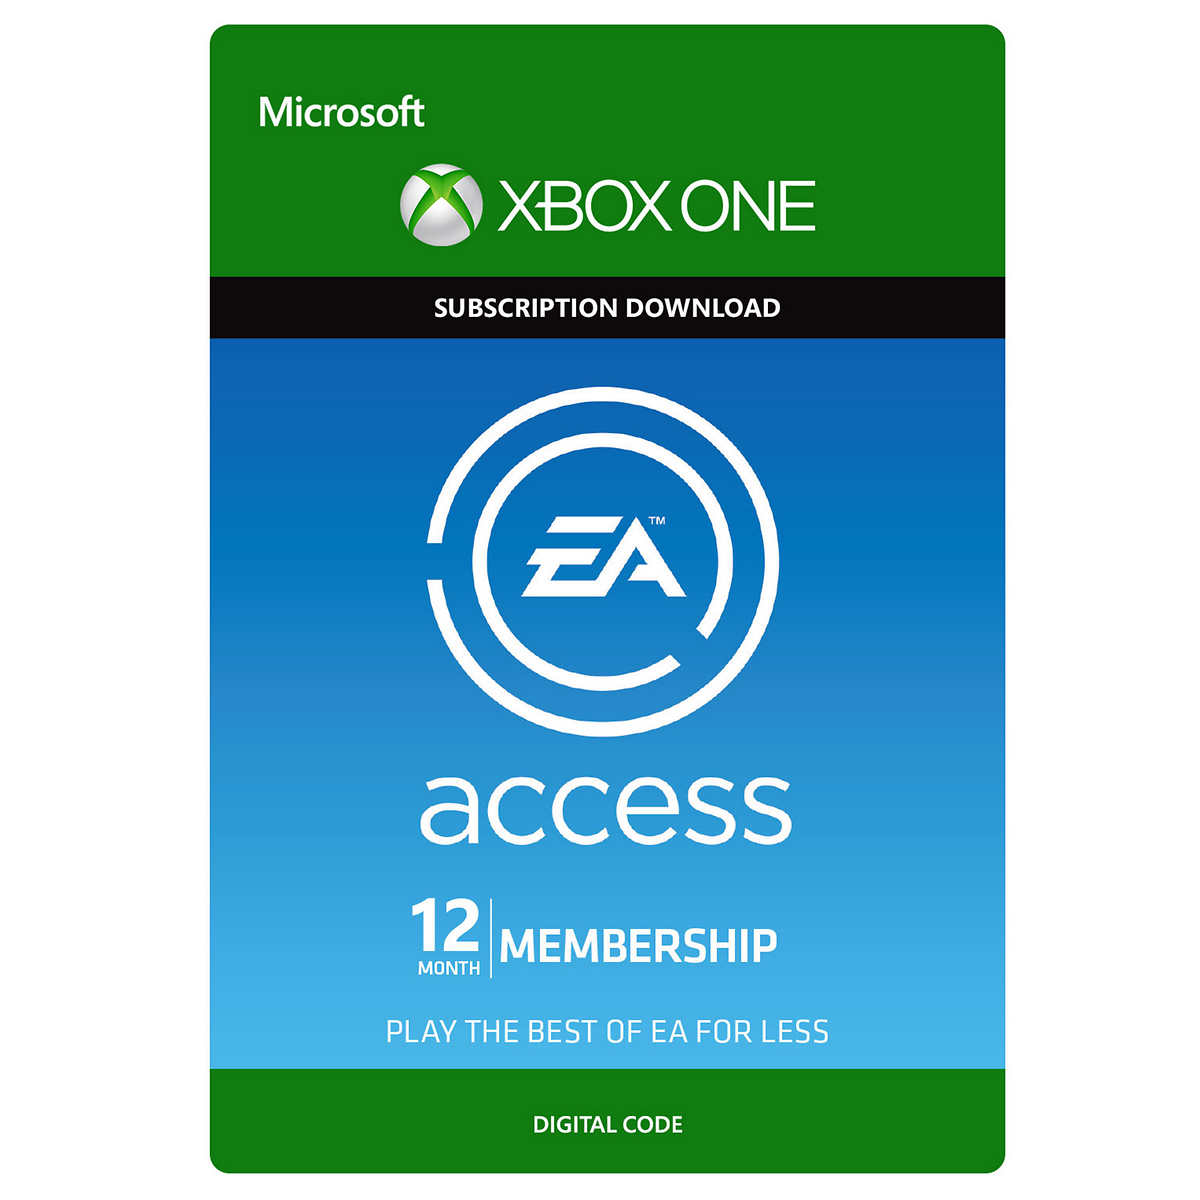 Xbox One EA Access 12 Month Subscription - Digital Download Code